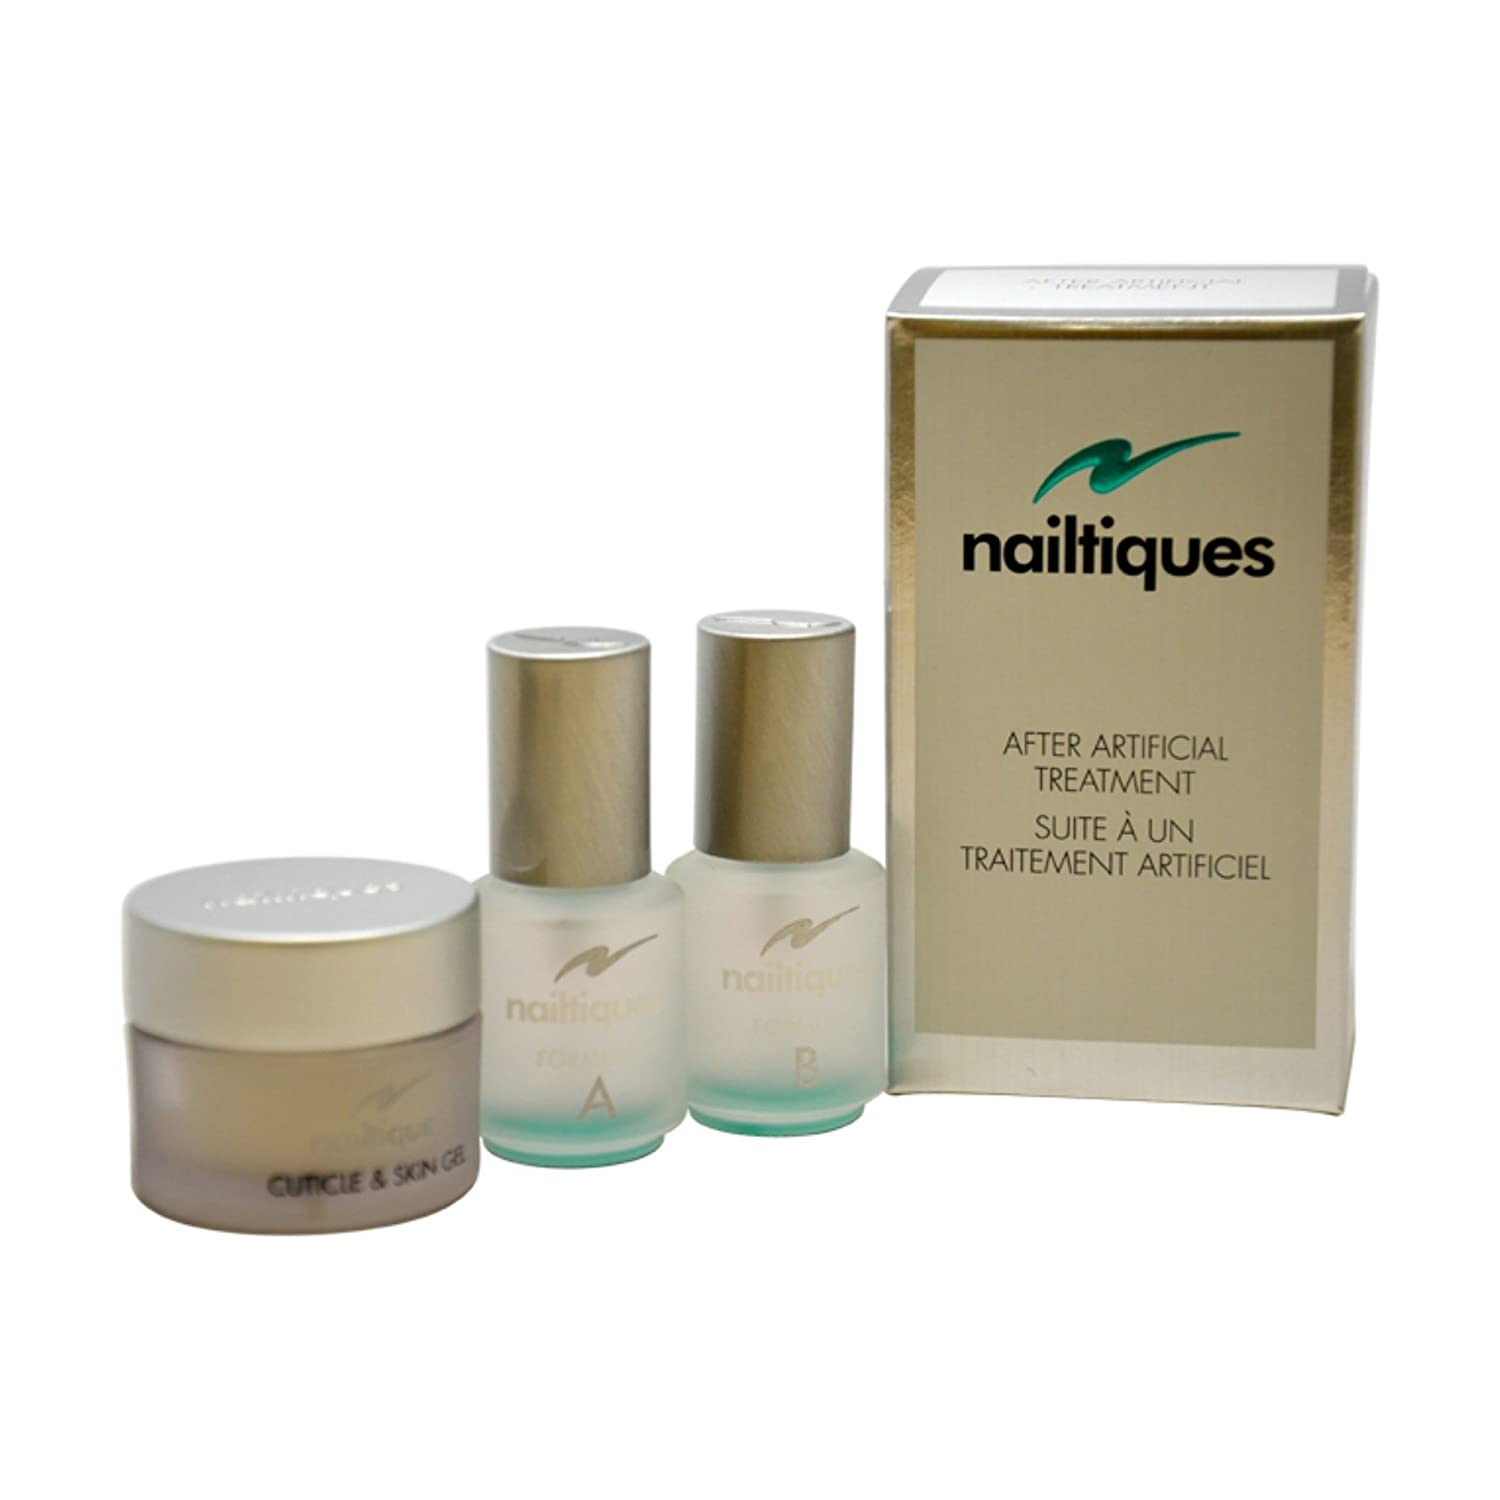 Nailtiques After Artificial Treatment Kit total Free shipping weight 4 Max 84% OFF oz 3